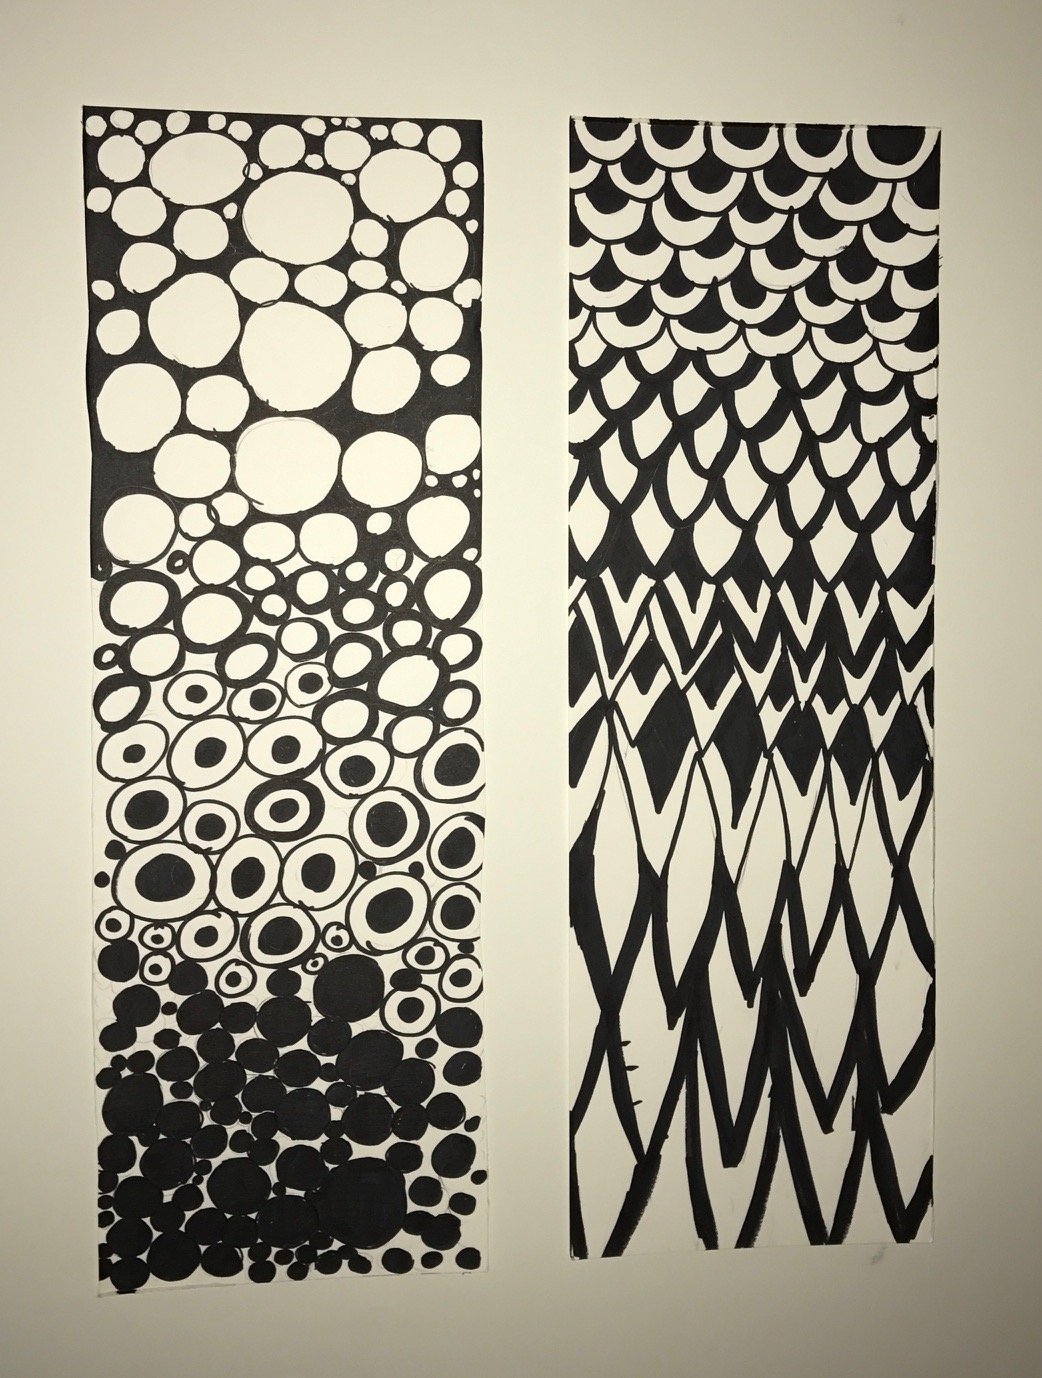 Space and Materiality- Patterns and experiments